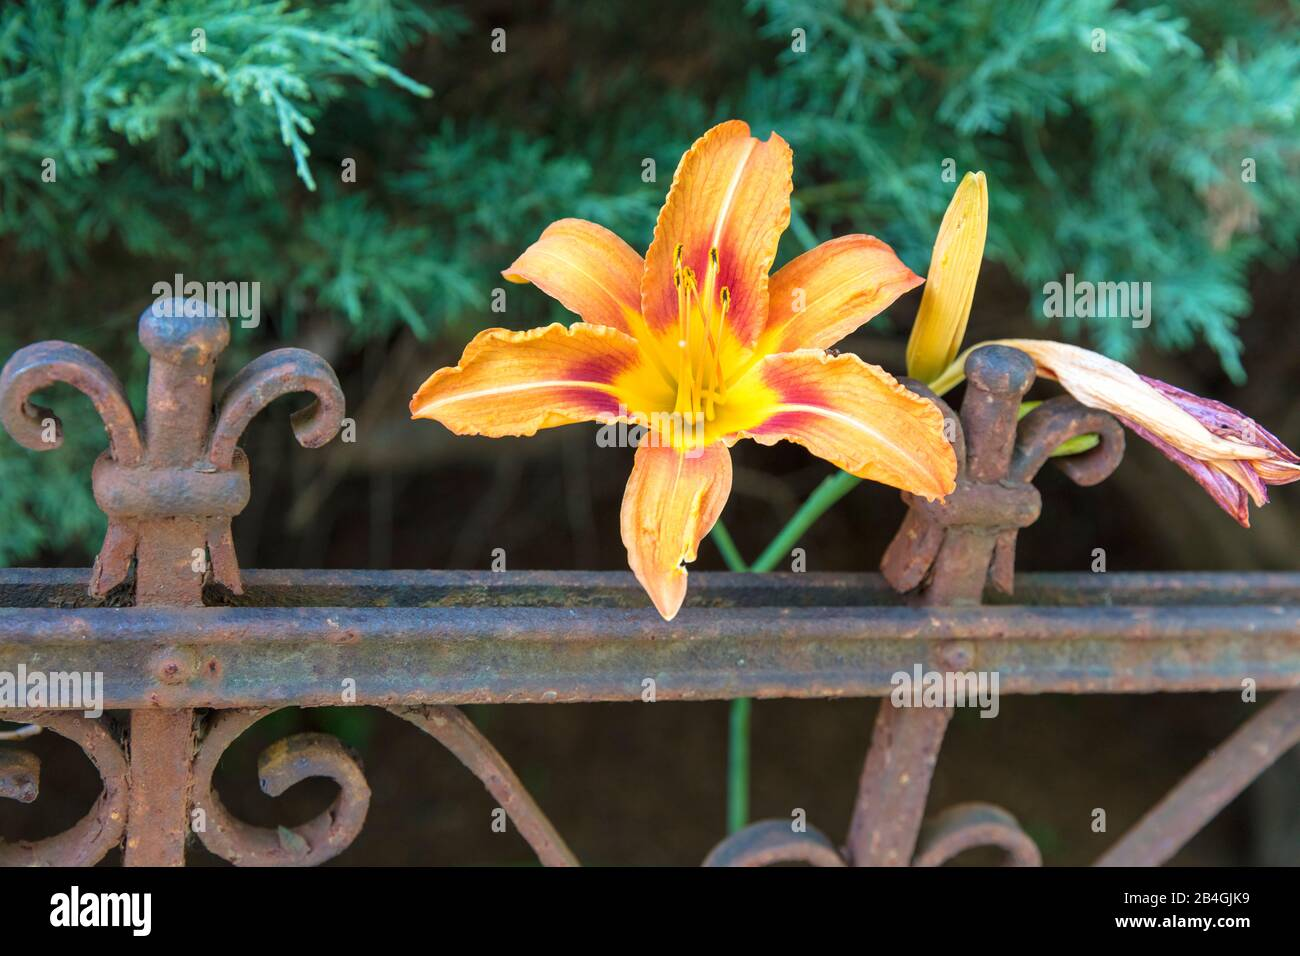 lily, flora, botany, plant, flowers, Wolfenbüttel, Lower Saxony, Germany, Europe Stock Photo